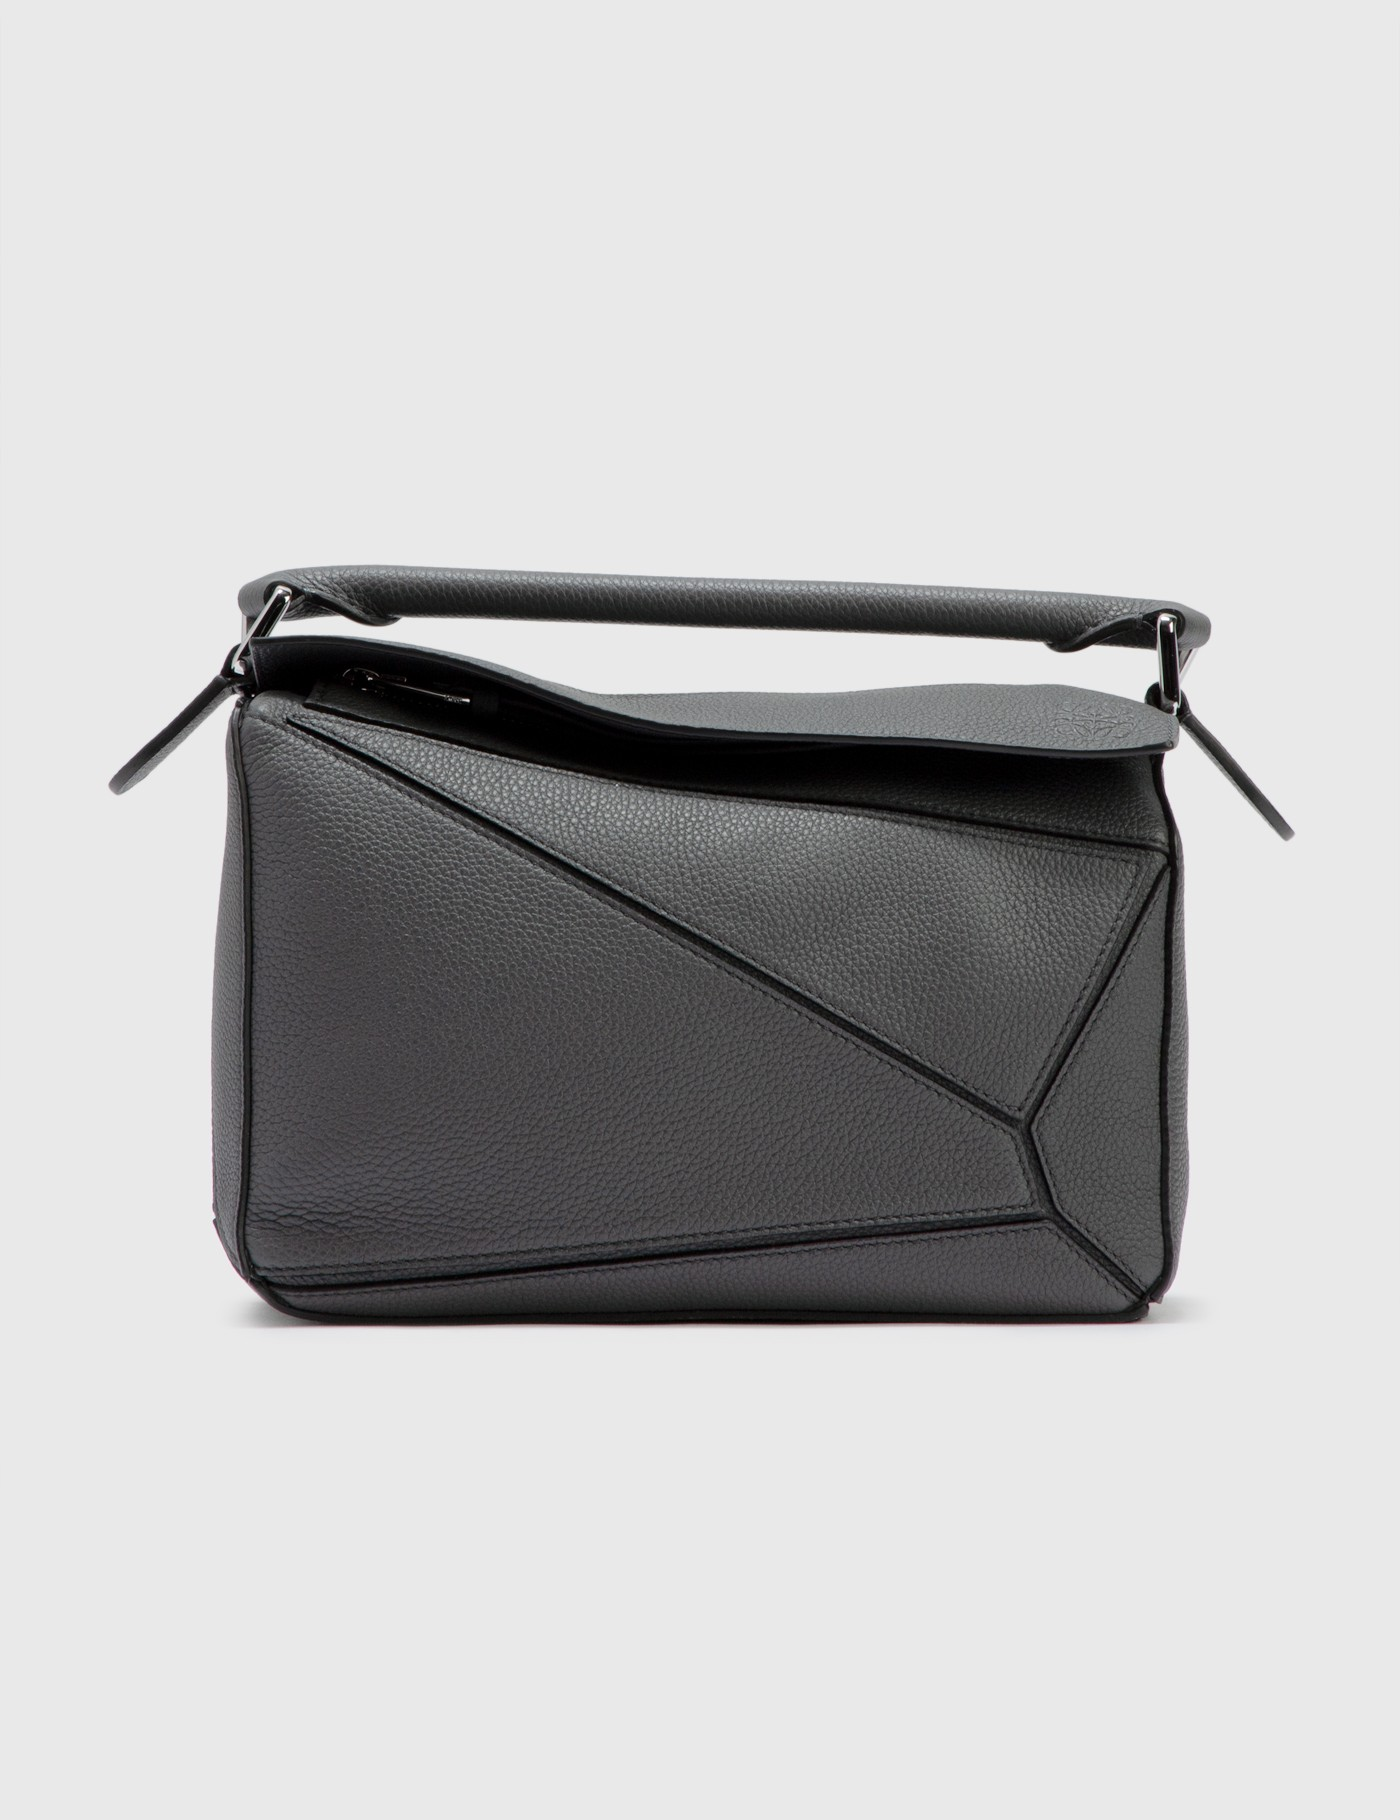 Loewe Small Puzzle Bag In Gray